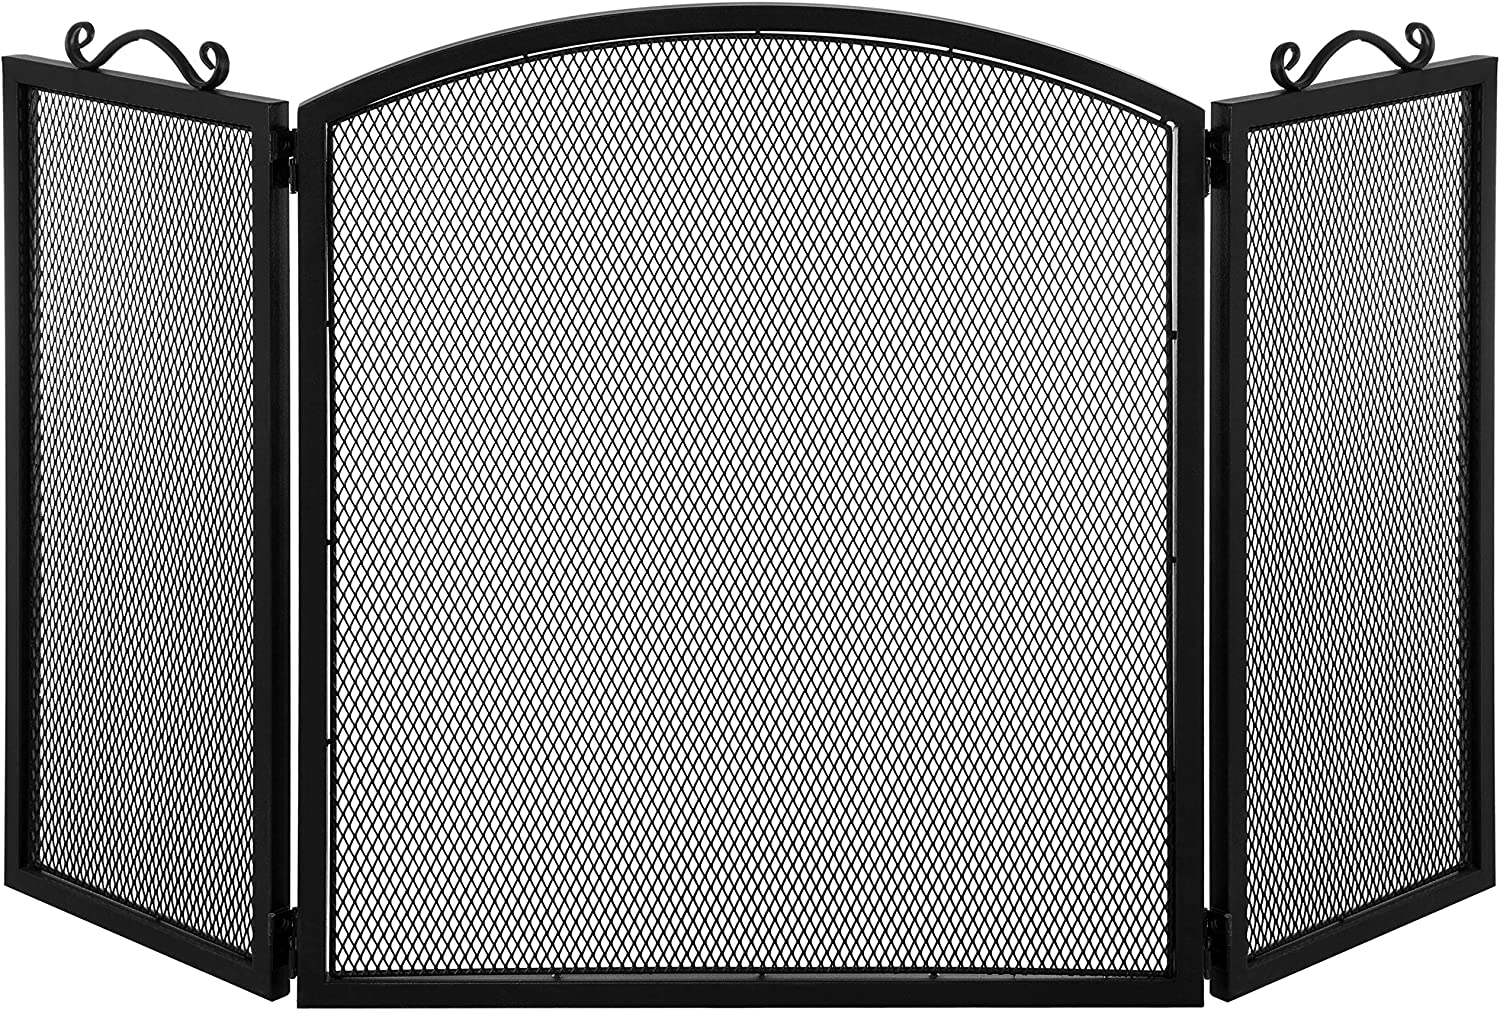 MyGift Classic 3-Panel Black Metal Mesh Fireplace Screen with Vintage Scrollwork Handles/Freestanding Modern Living Room Decor